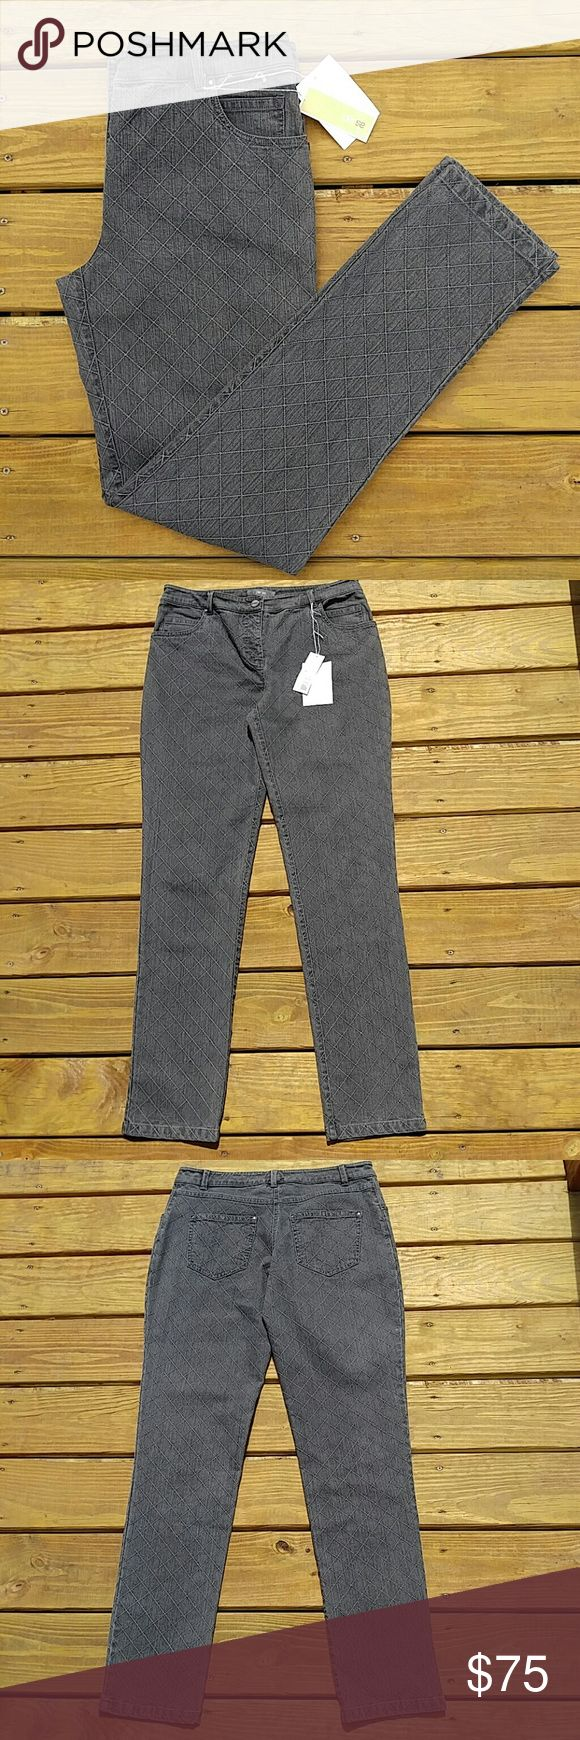 "Per Se Dark Gray Washed Jeans NWT! Dark grey skinny jeans with a washed look to them! They have a cool embroidered, graphic, diagonal windowpane design! Inseam measures 33"" Thanks for looking! Per Se Jeans Skinny"